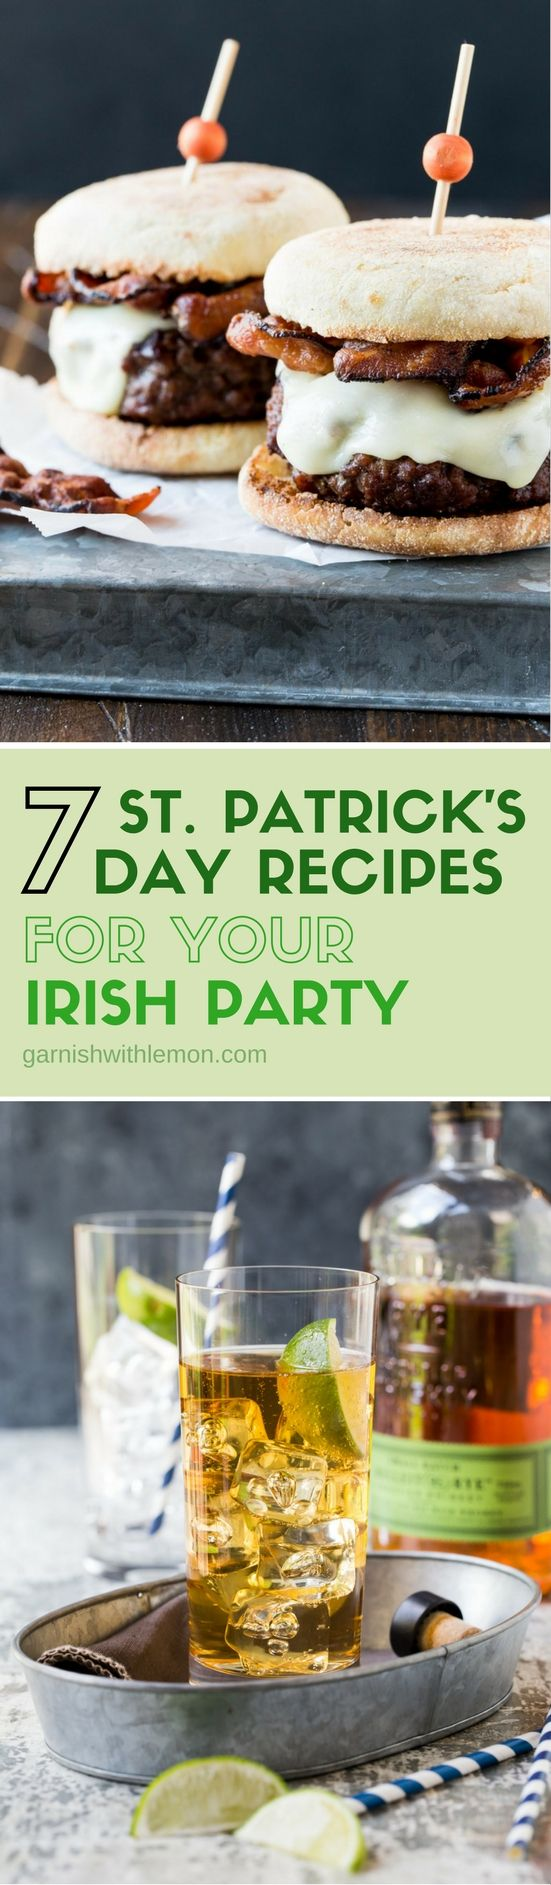 Everyone is just a little bit Irish on St. Paddy's Day. Celebrate with any one of these 7 traditional (and not so traditional) St. Patrick's Day Recipes for your Irish party!